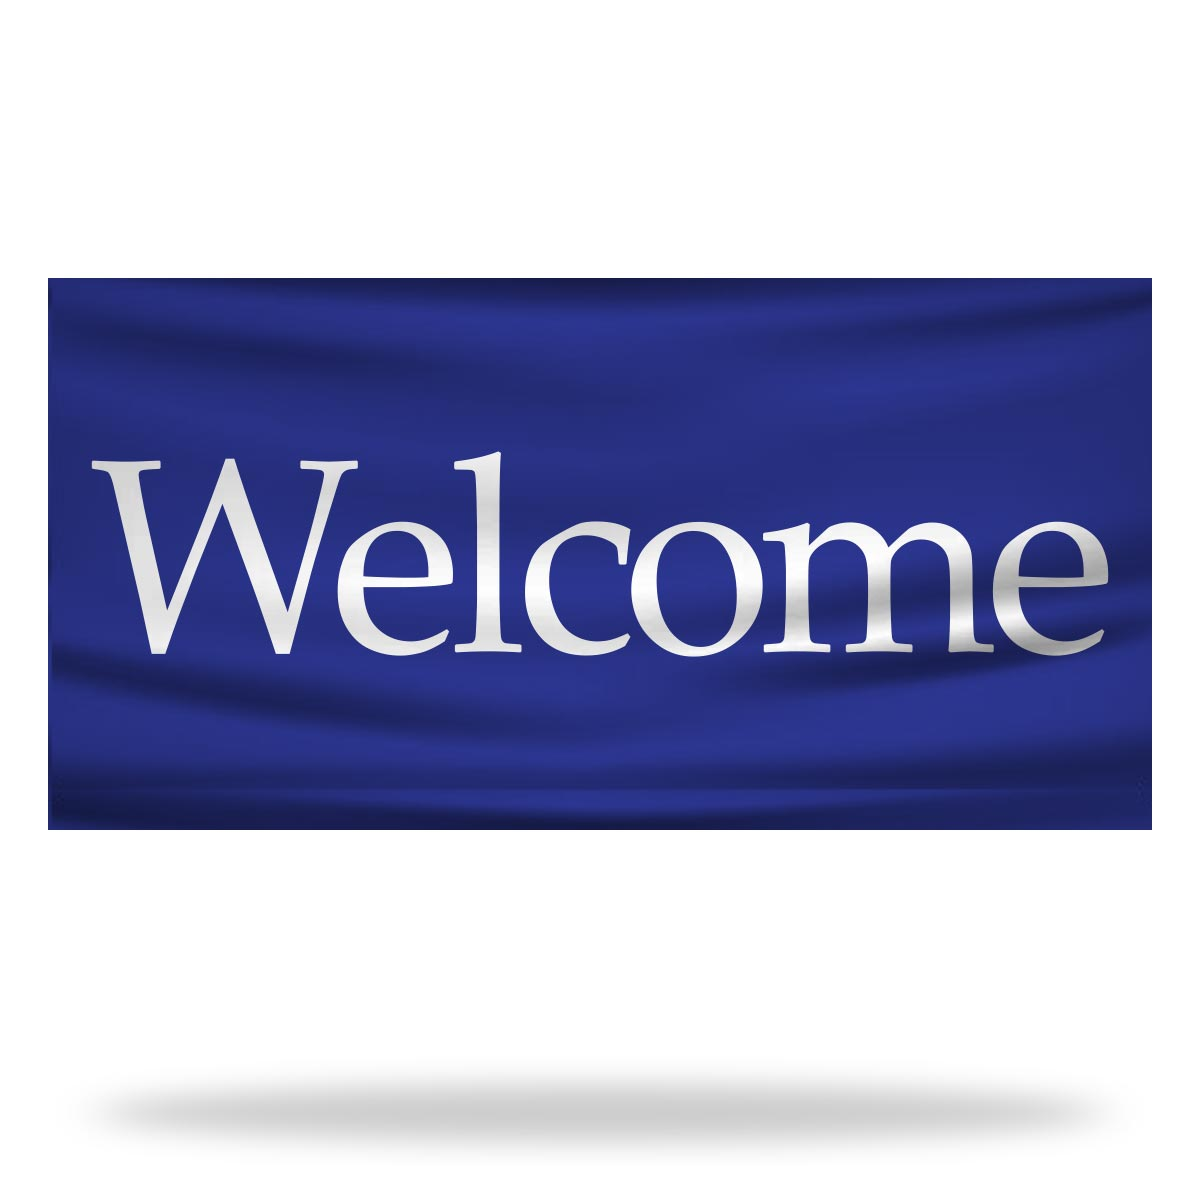 Welcome Flags & Banners Design 04